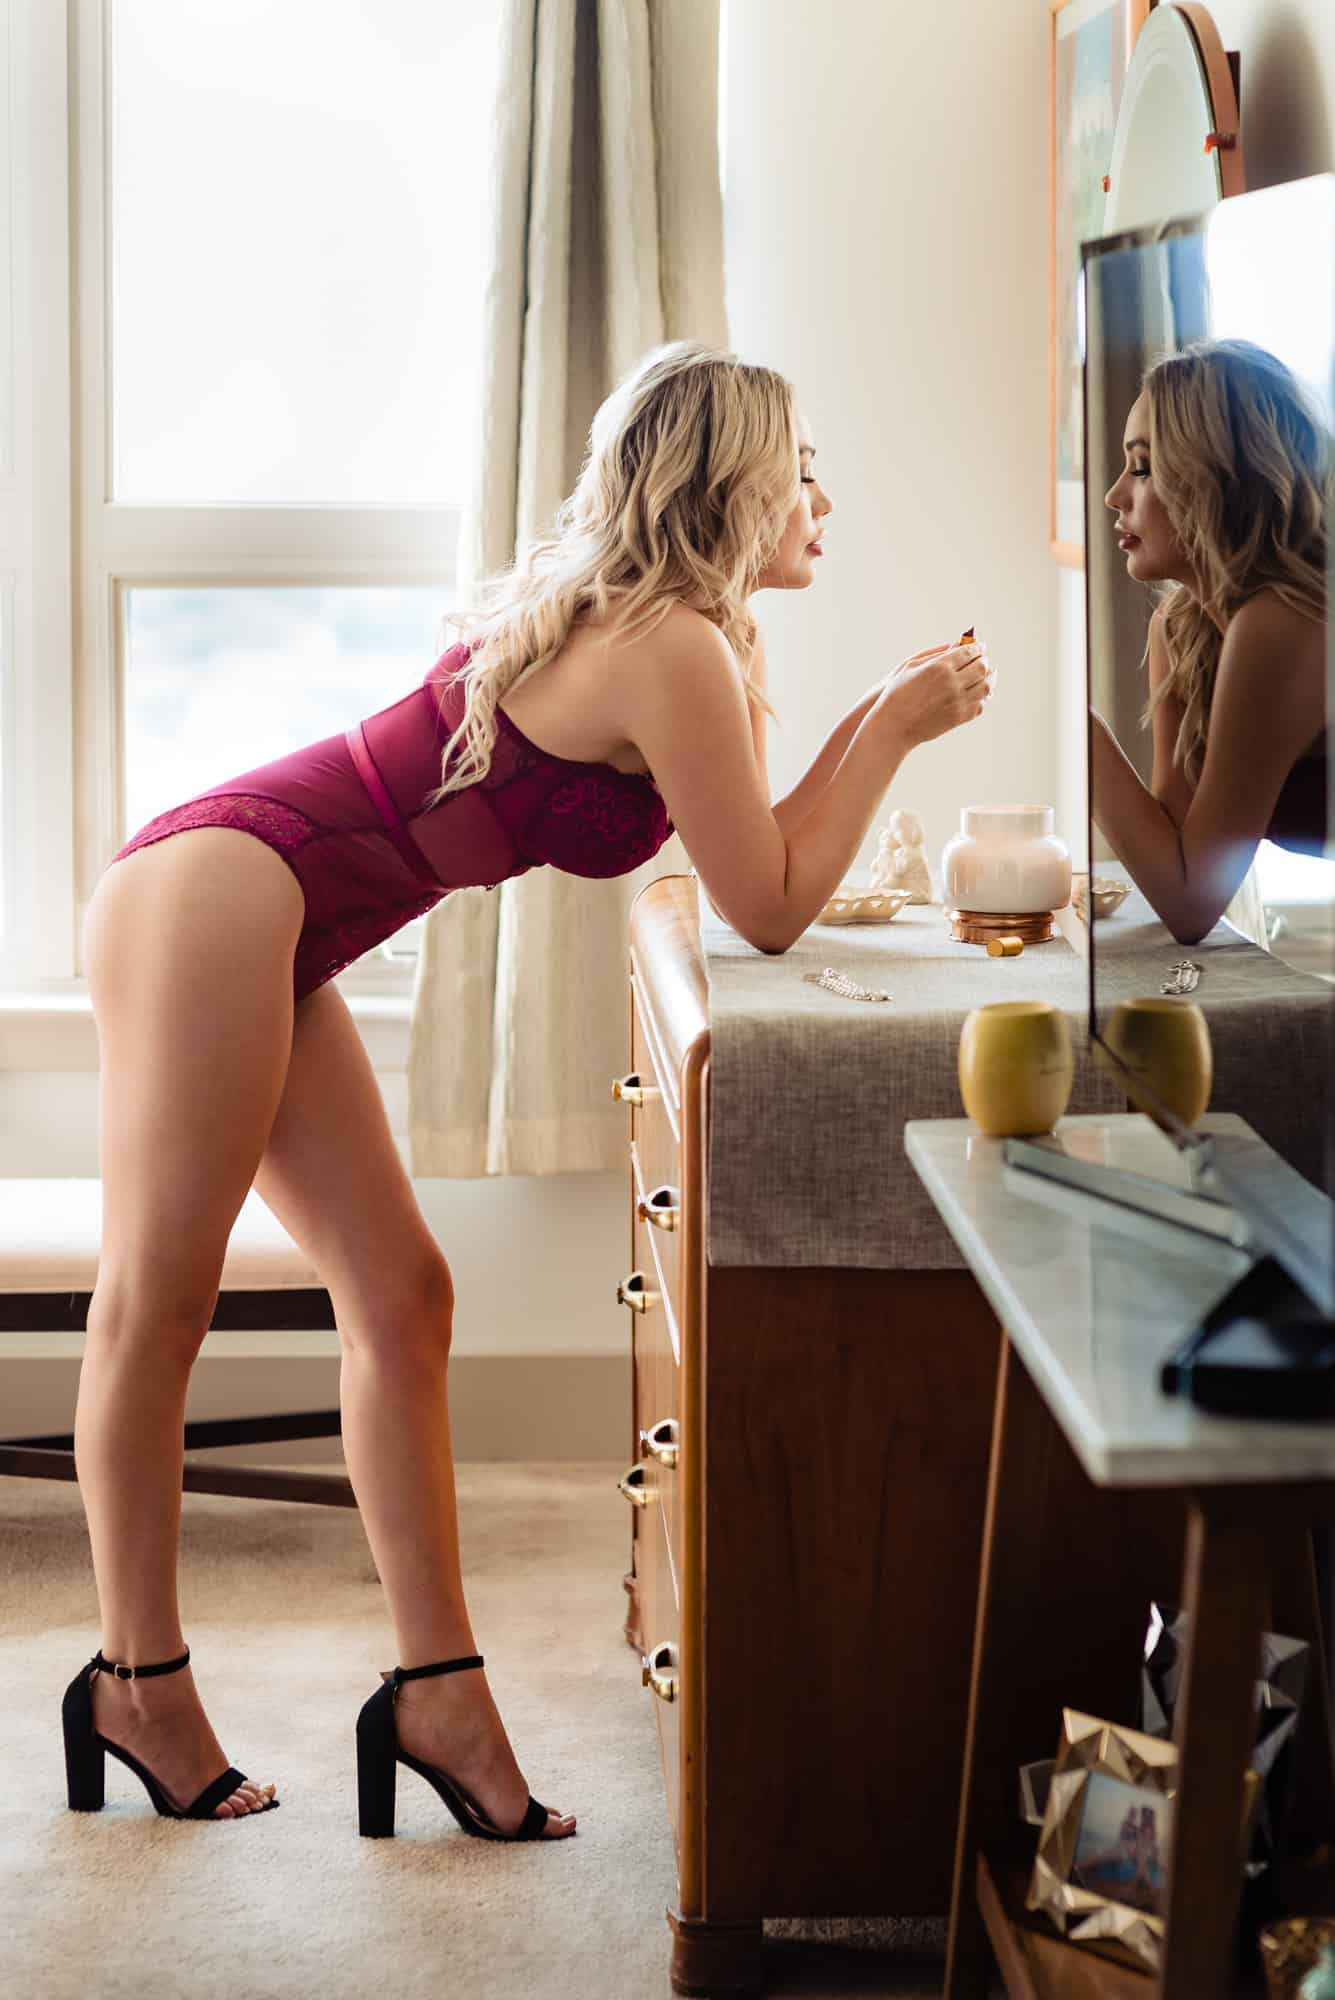 boudoir photo of woman in red lingerie looking in mirror